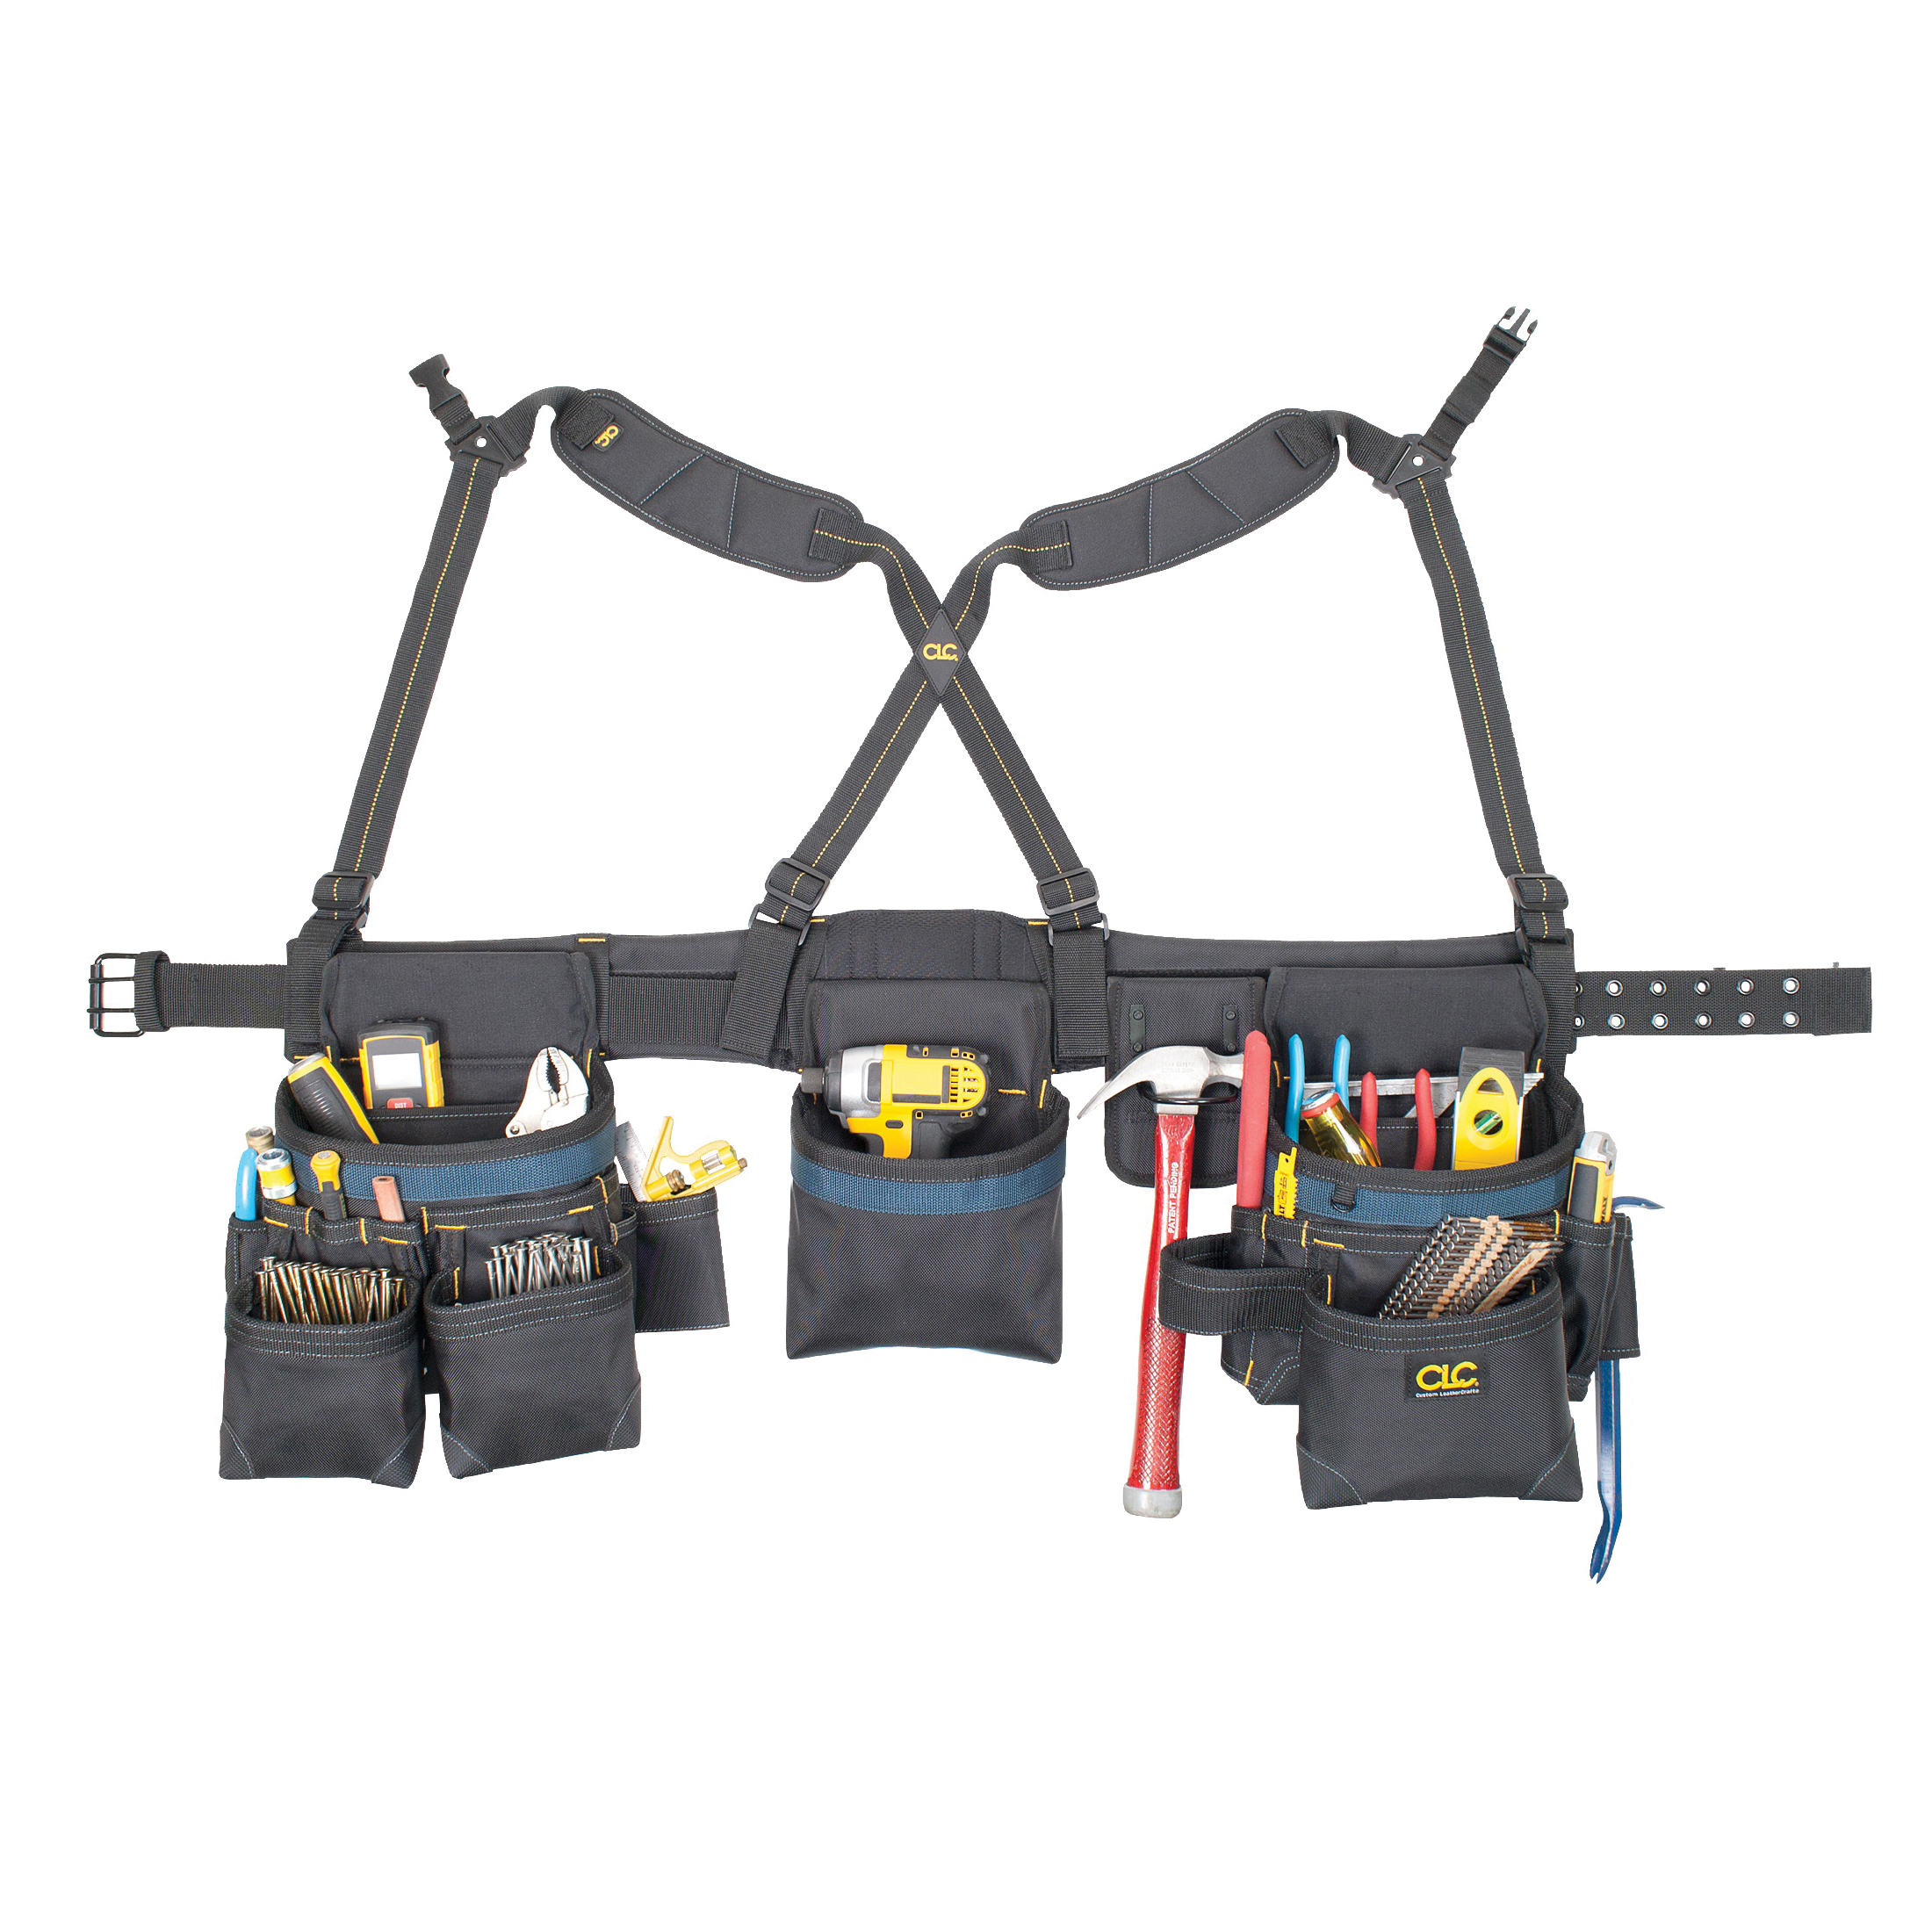 Picture of CLC Tool Works Framing Master 2617 Tool Belt, 29 to 46 in Waist, Ballistic Poly Fabric, Black, 28 -Pocket